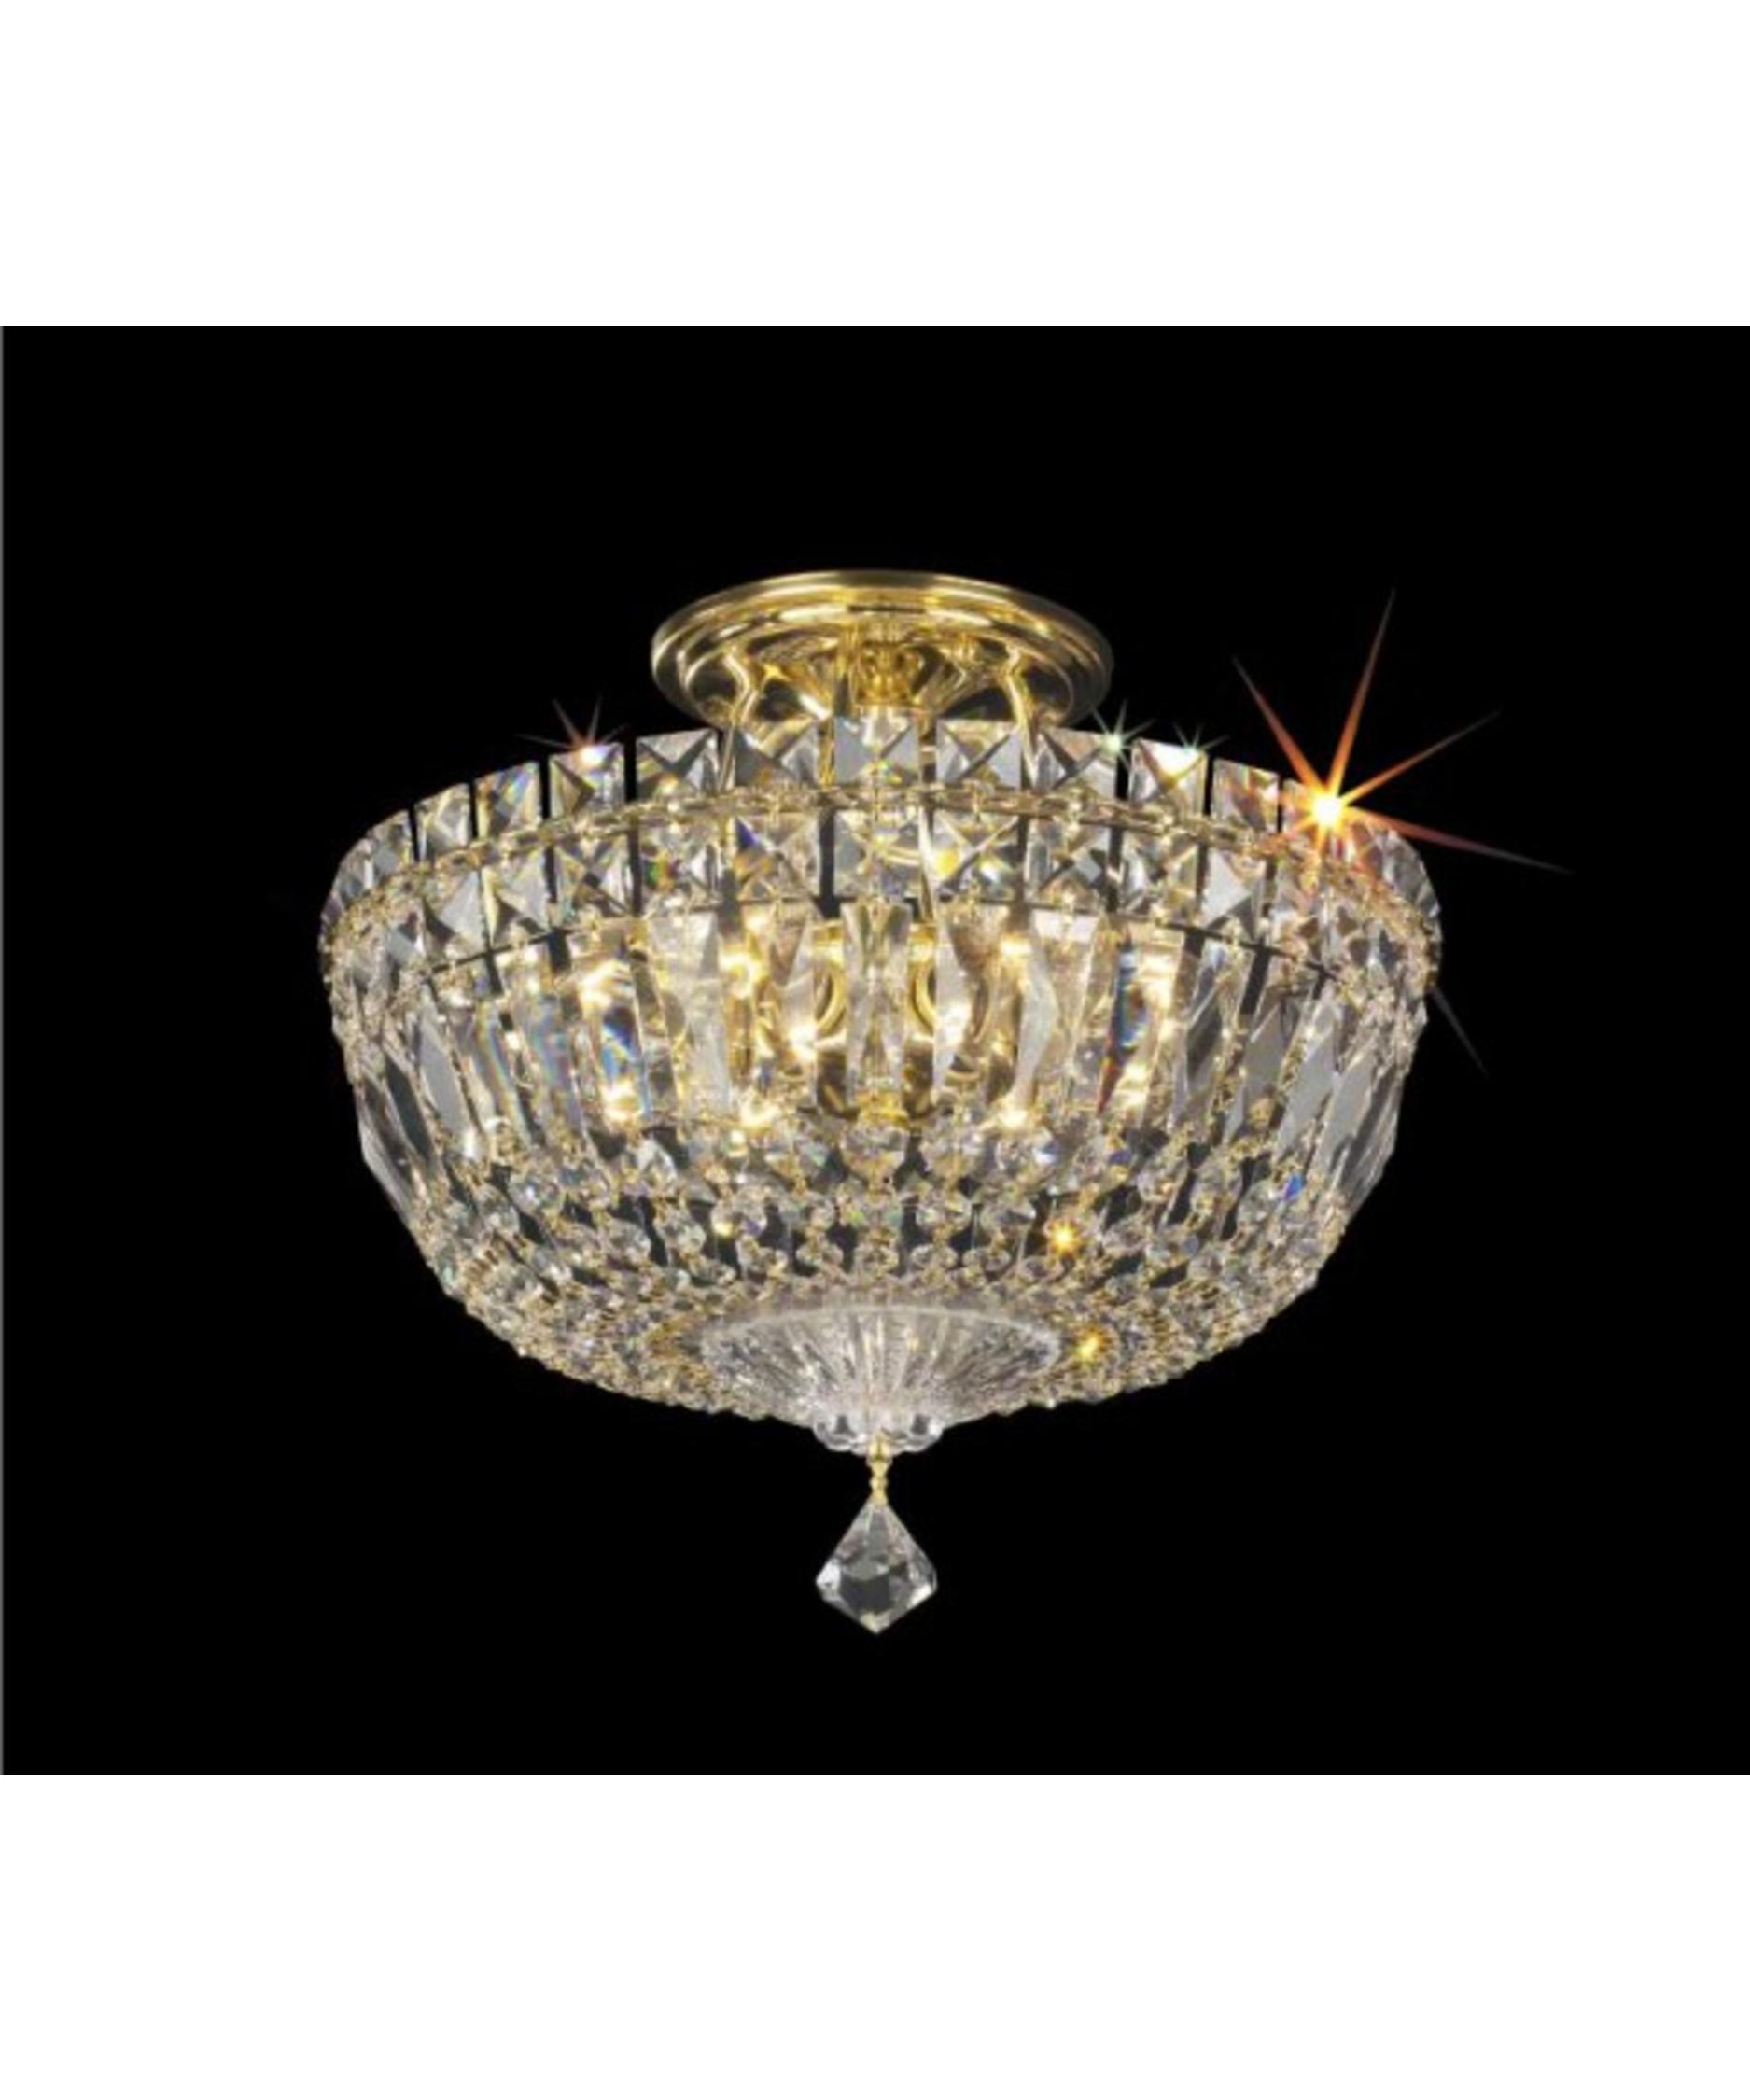 Light : Lovely Crystal Semi Flush Mount Lighting In Chandelier Of For 2018 Flush Chandelier Ceiling Lights (View 13 of 20)